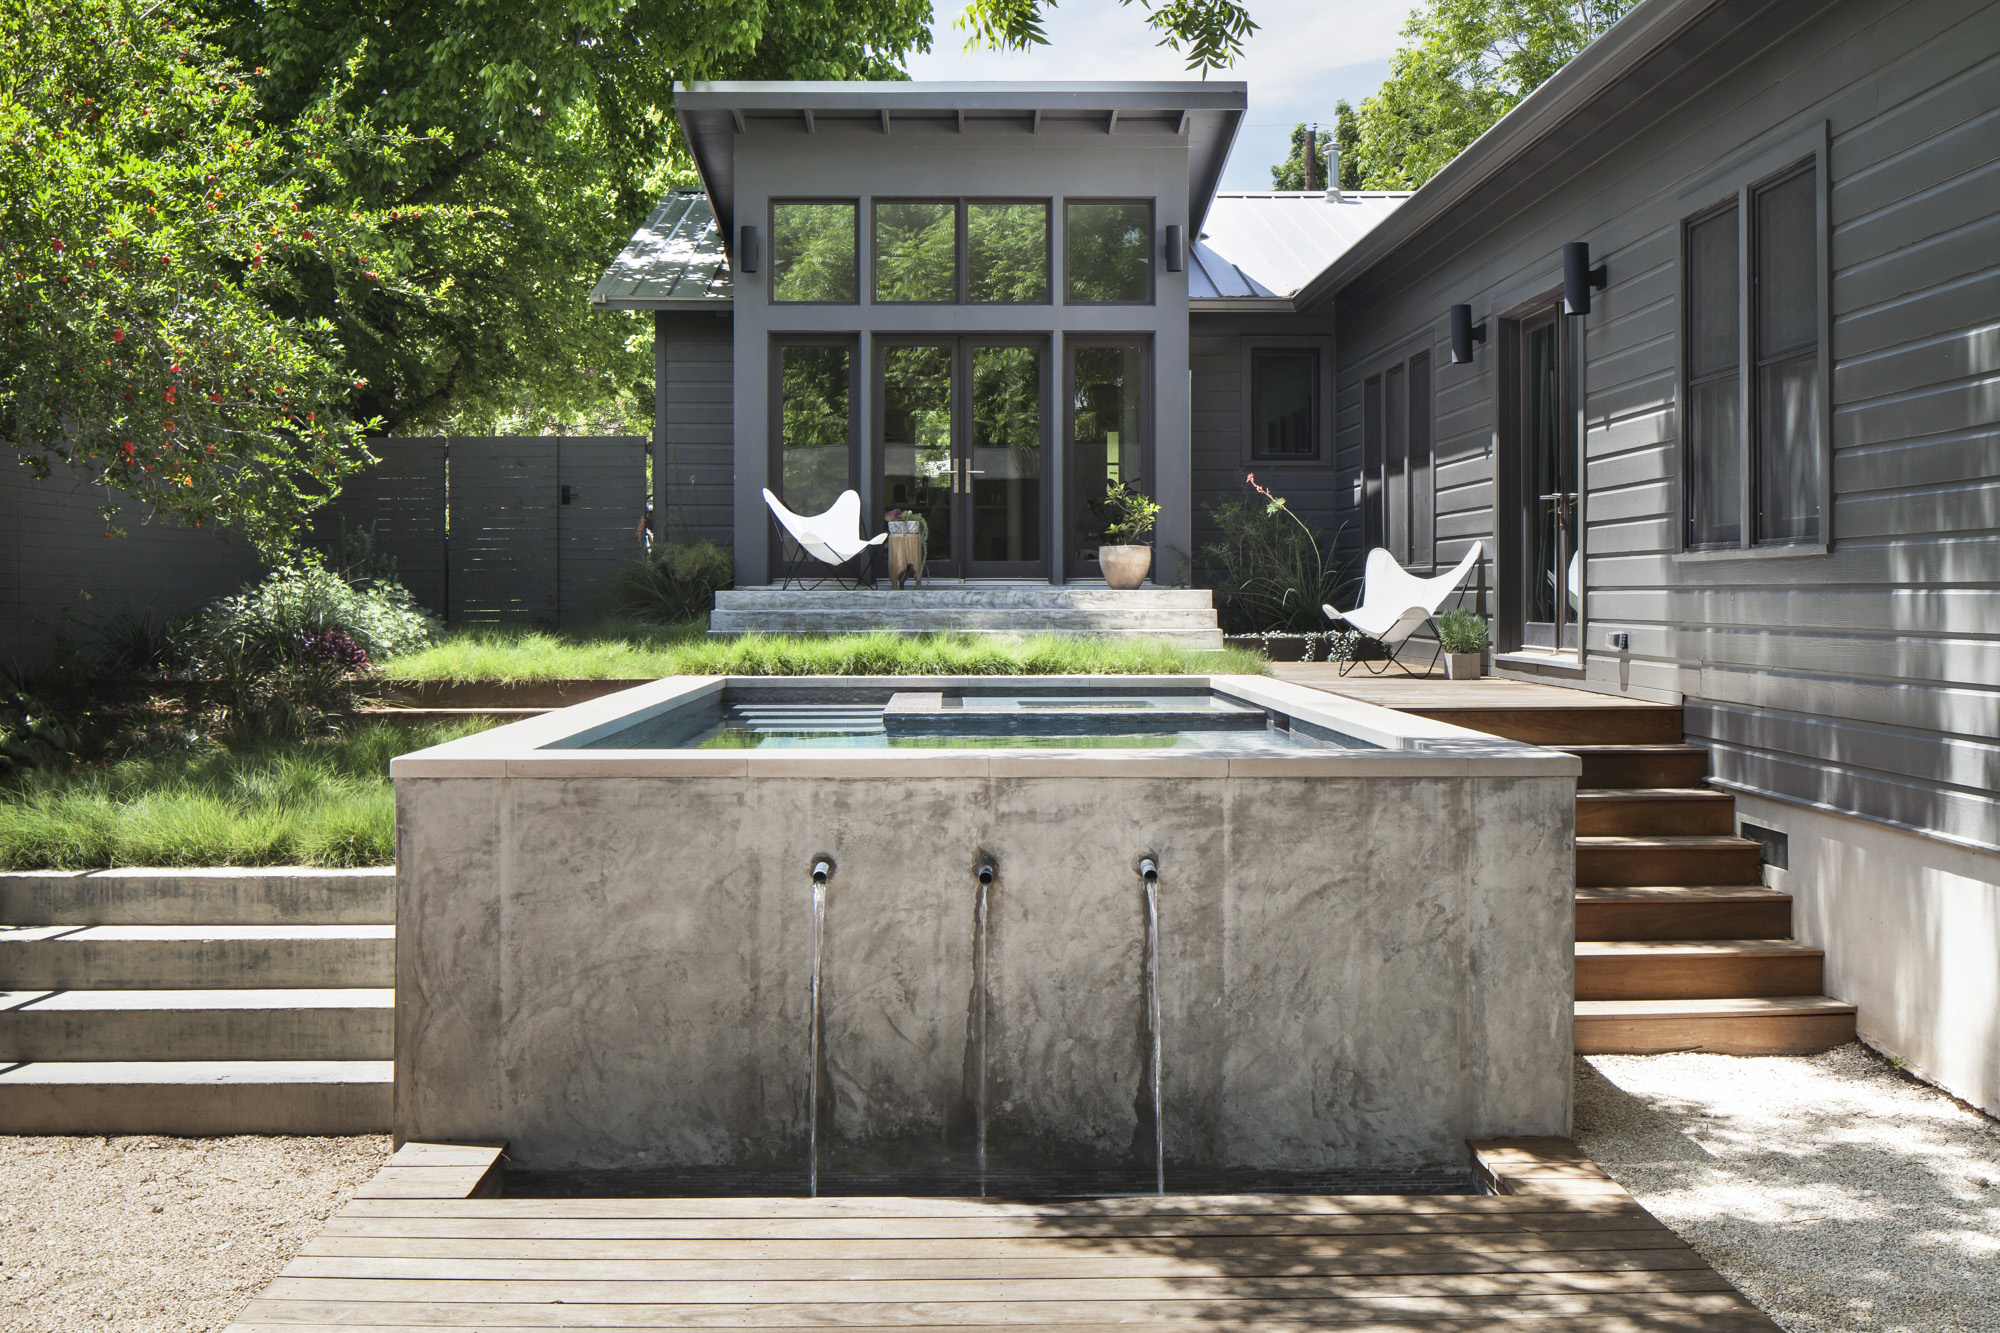 Elizabeth-Baird-Architecture-Garner Pool and Casita- pool and patio .jpg